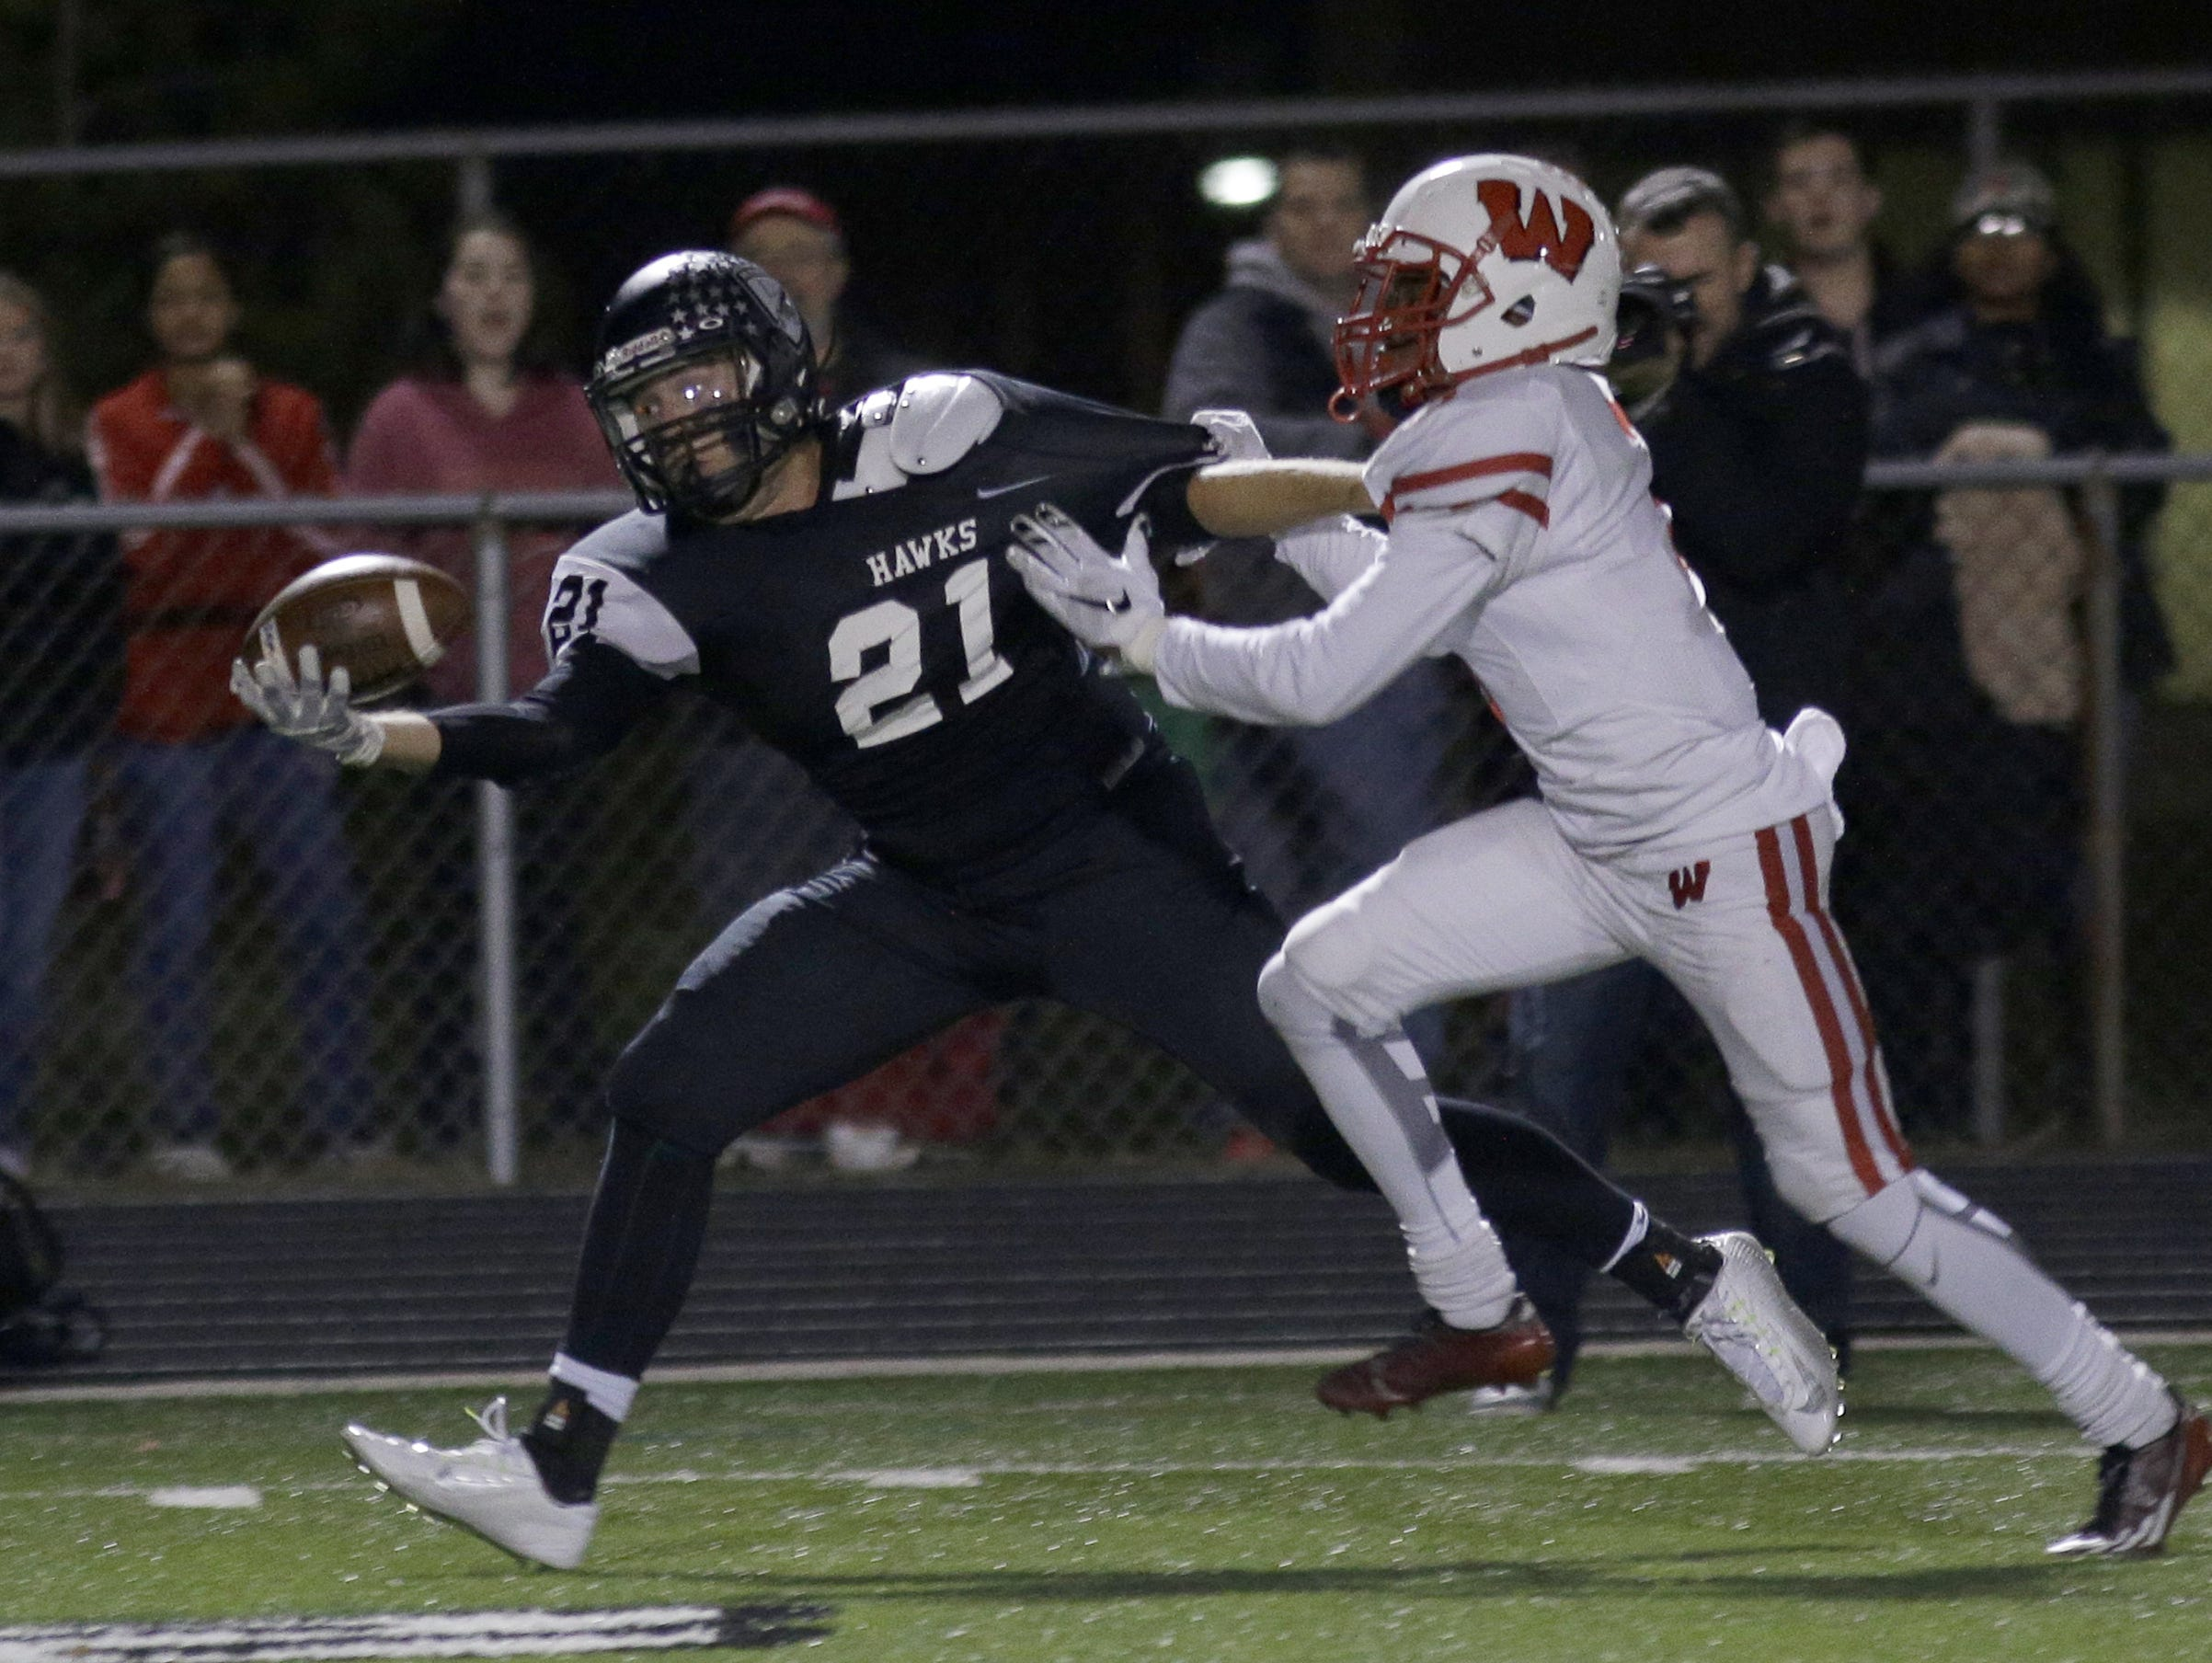 Lakota East's Austin Hatfield (21) tries to catch the ball while defended by Lakota West's Jalen Hall (3) during their football game, Friday, Oct . 30.